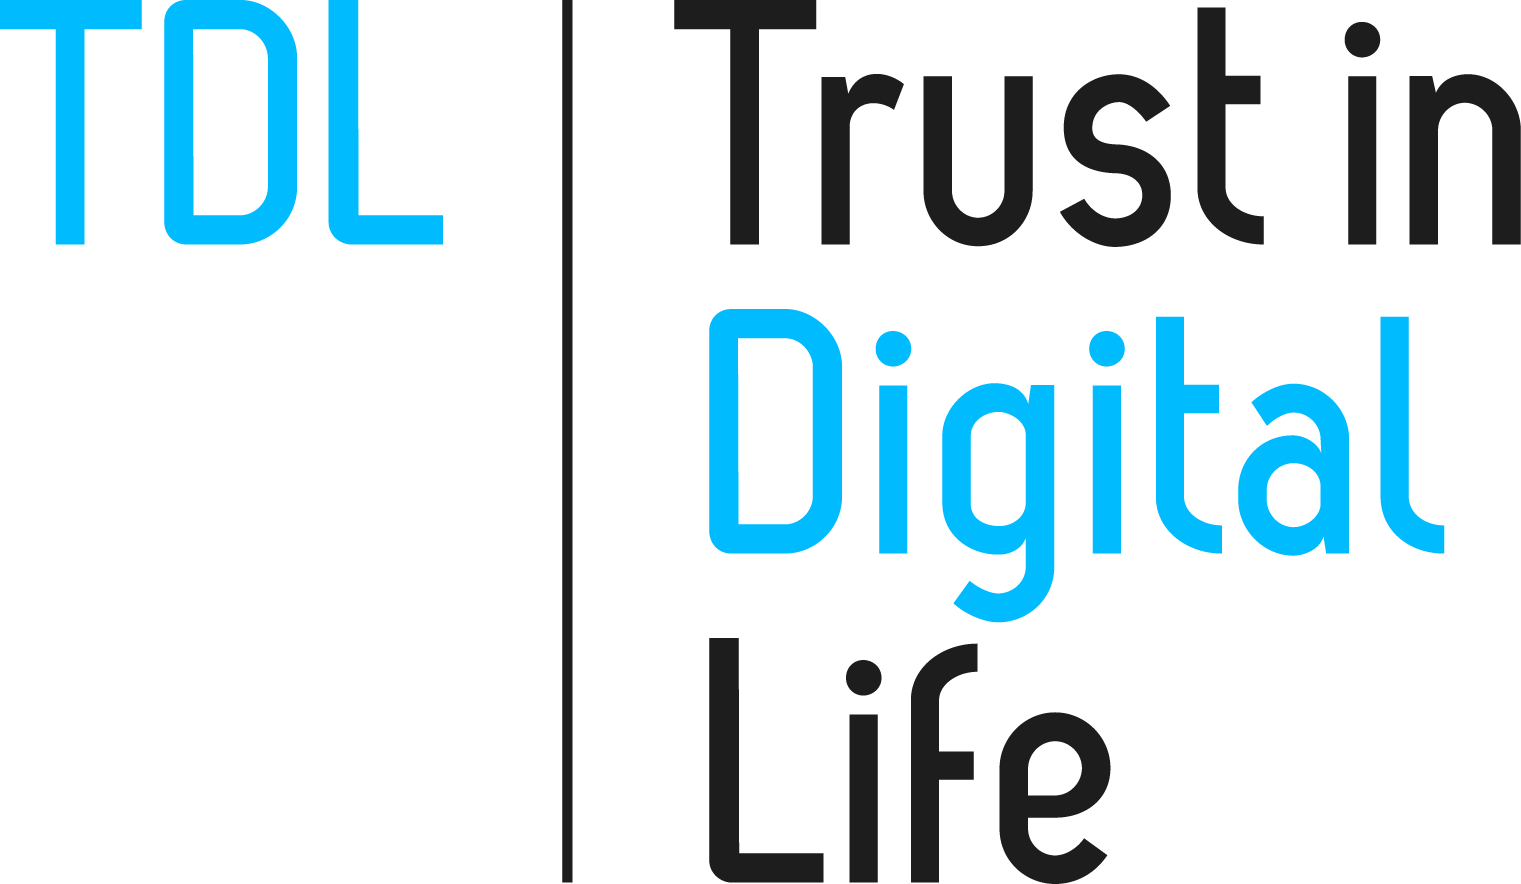 Trust in Digital Life